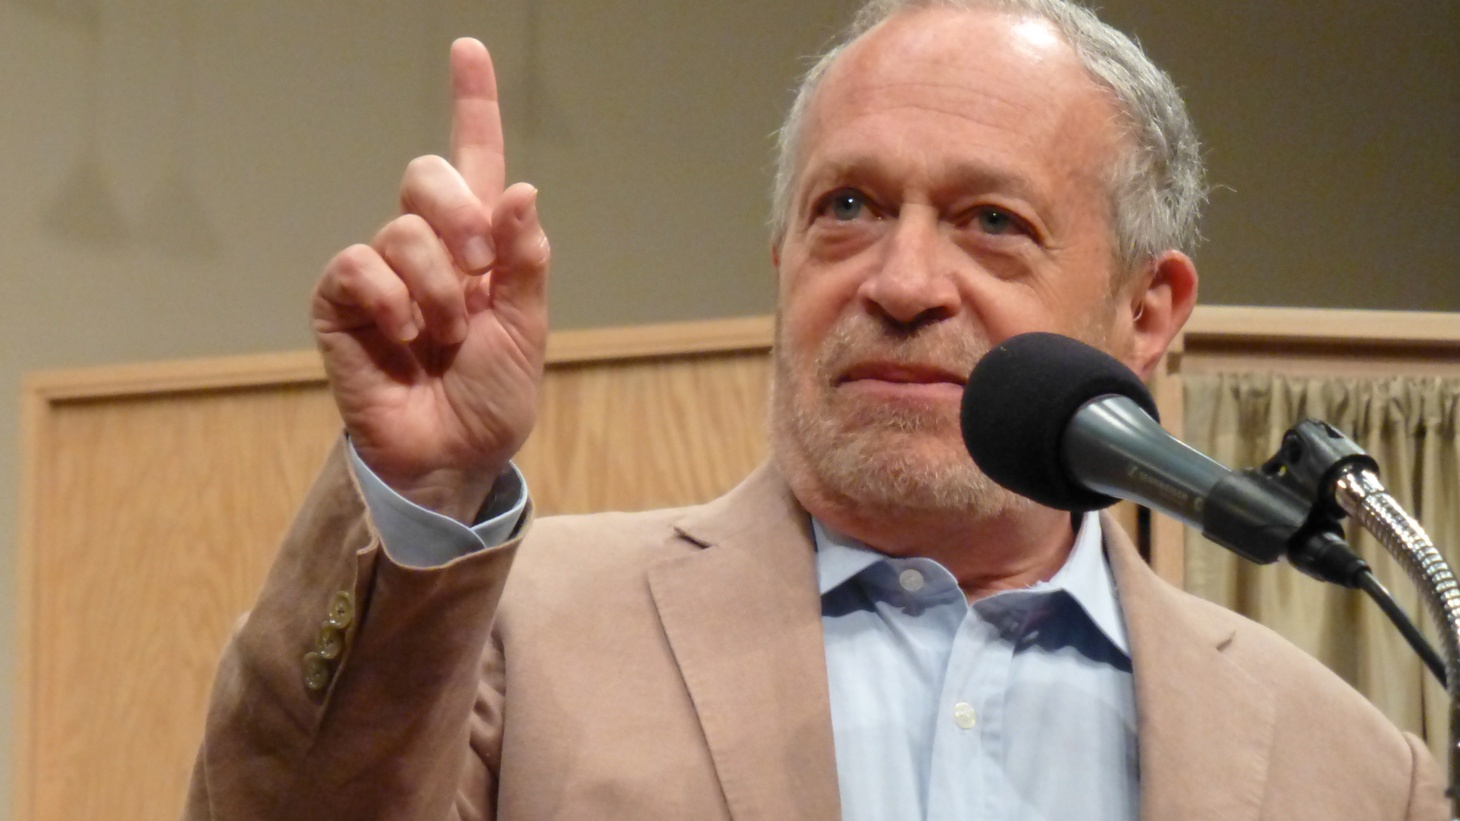 Former Labor Secretary Robert Reich says both Bernie Sanders and Donald Trump are right about the role of wealth and power in America. And art critic Jerry Saltz discusses celebrities who have turned to the fine arts.